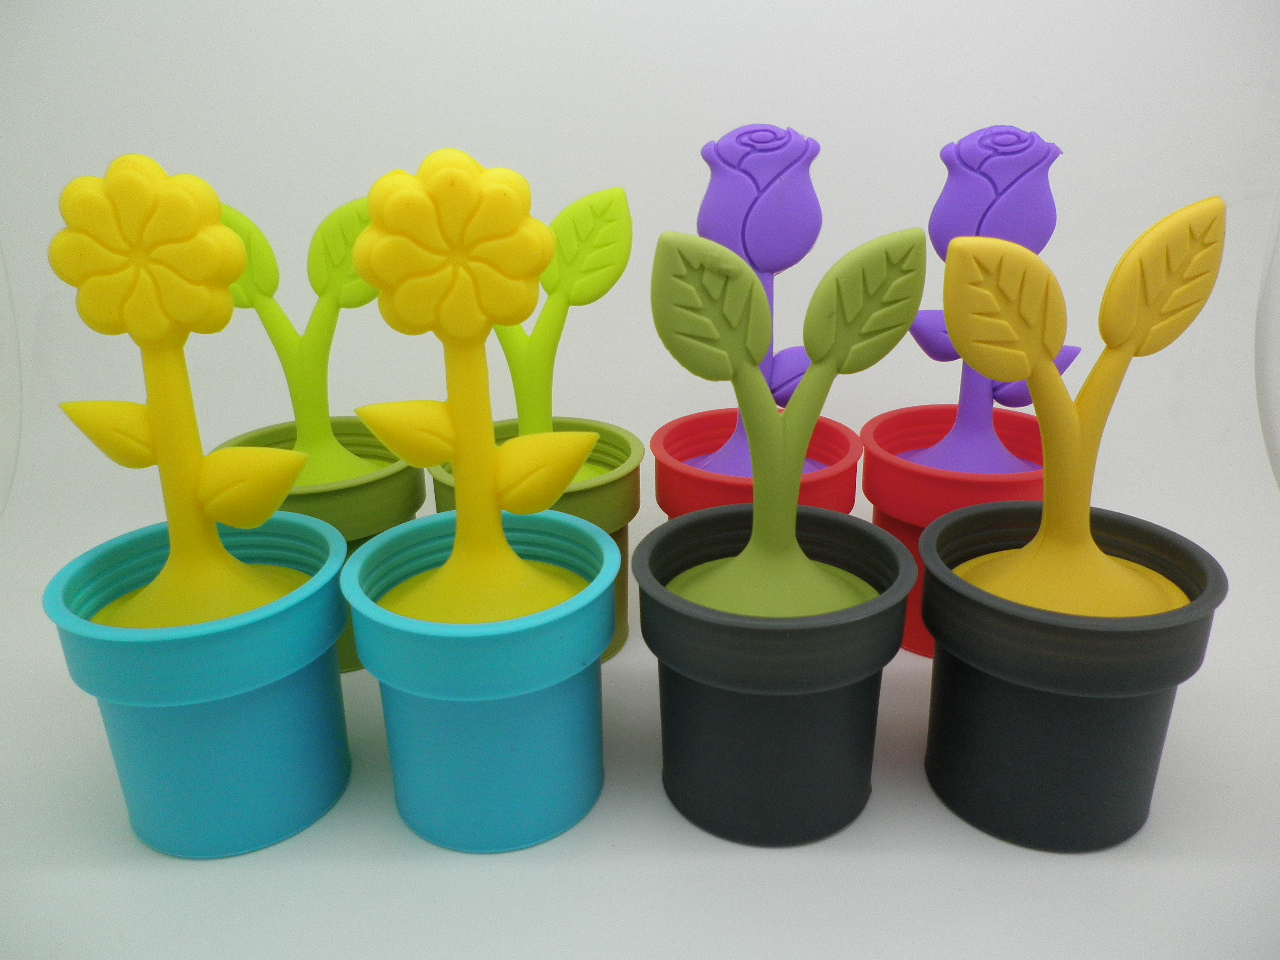 http://www.refinehksilicone.cn/data/images/product/20180417100852_676.JPG